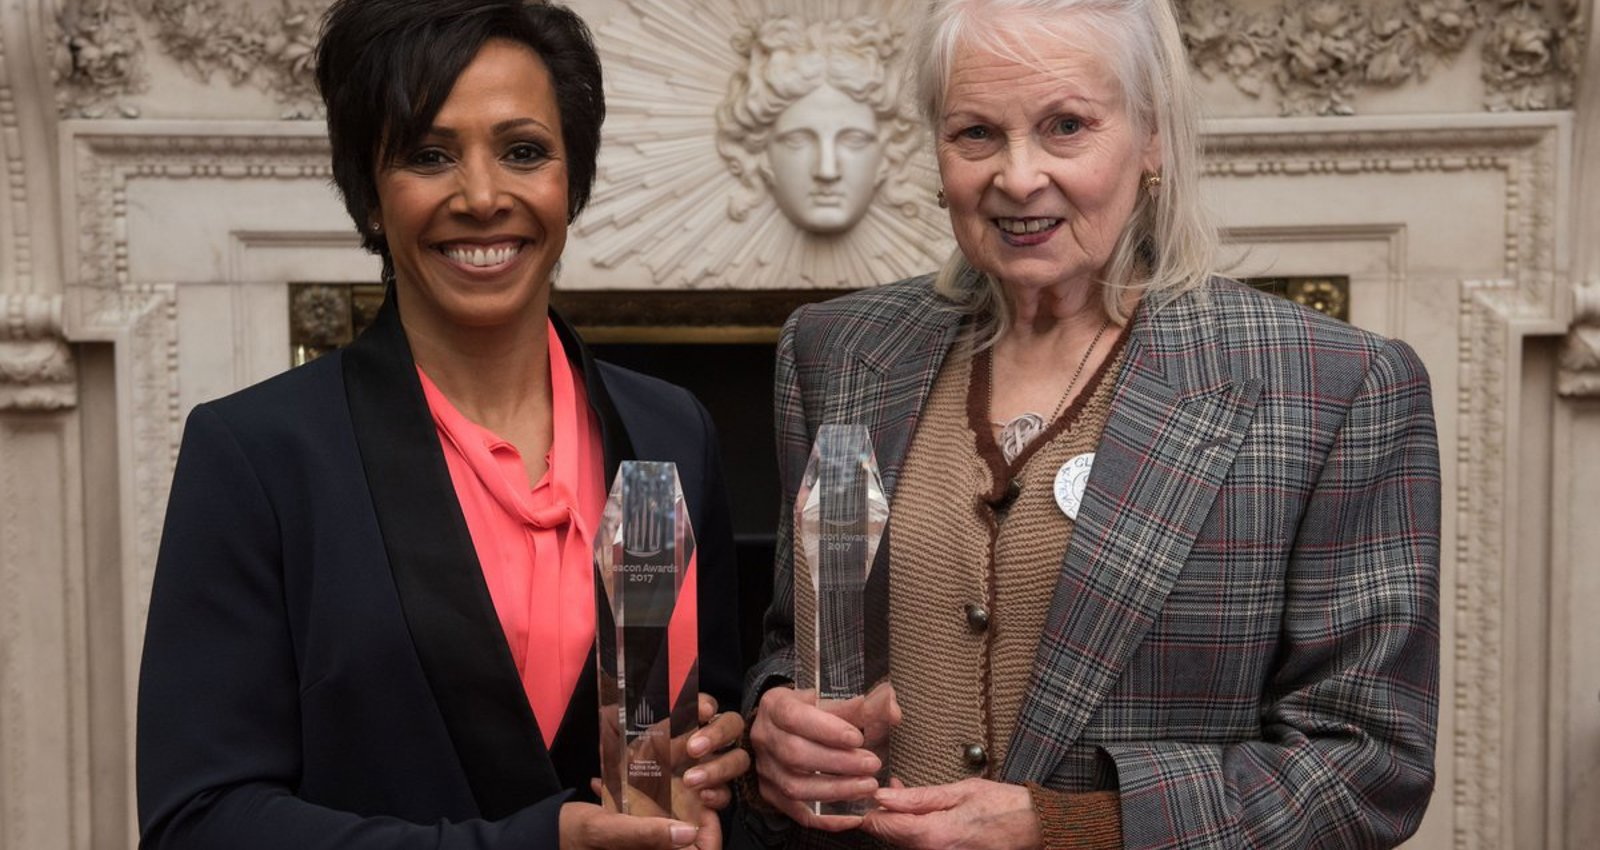 Dame Kelly Holmes recognised for philanthropy